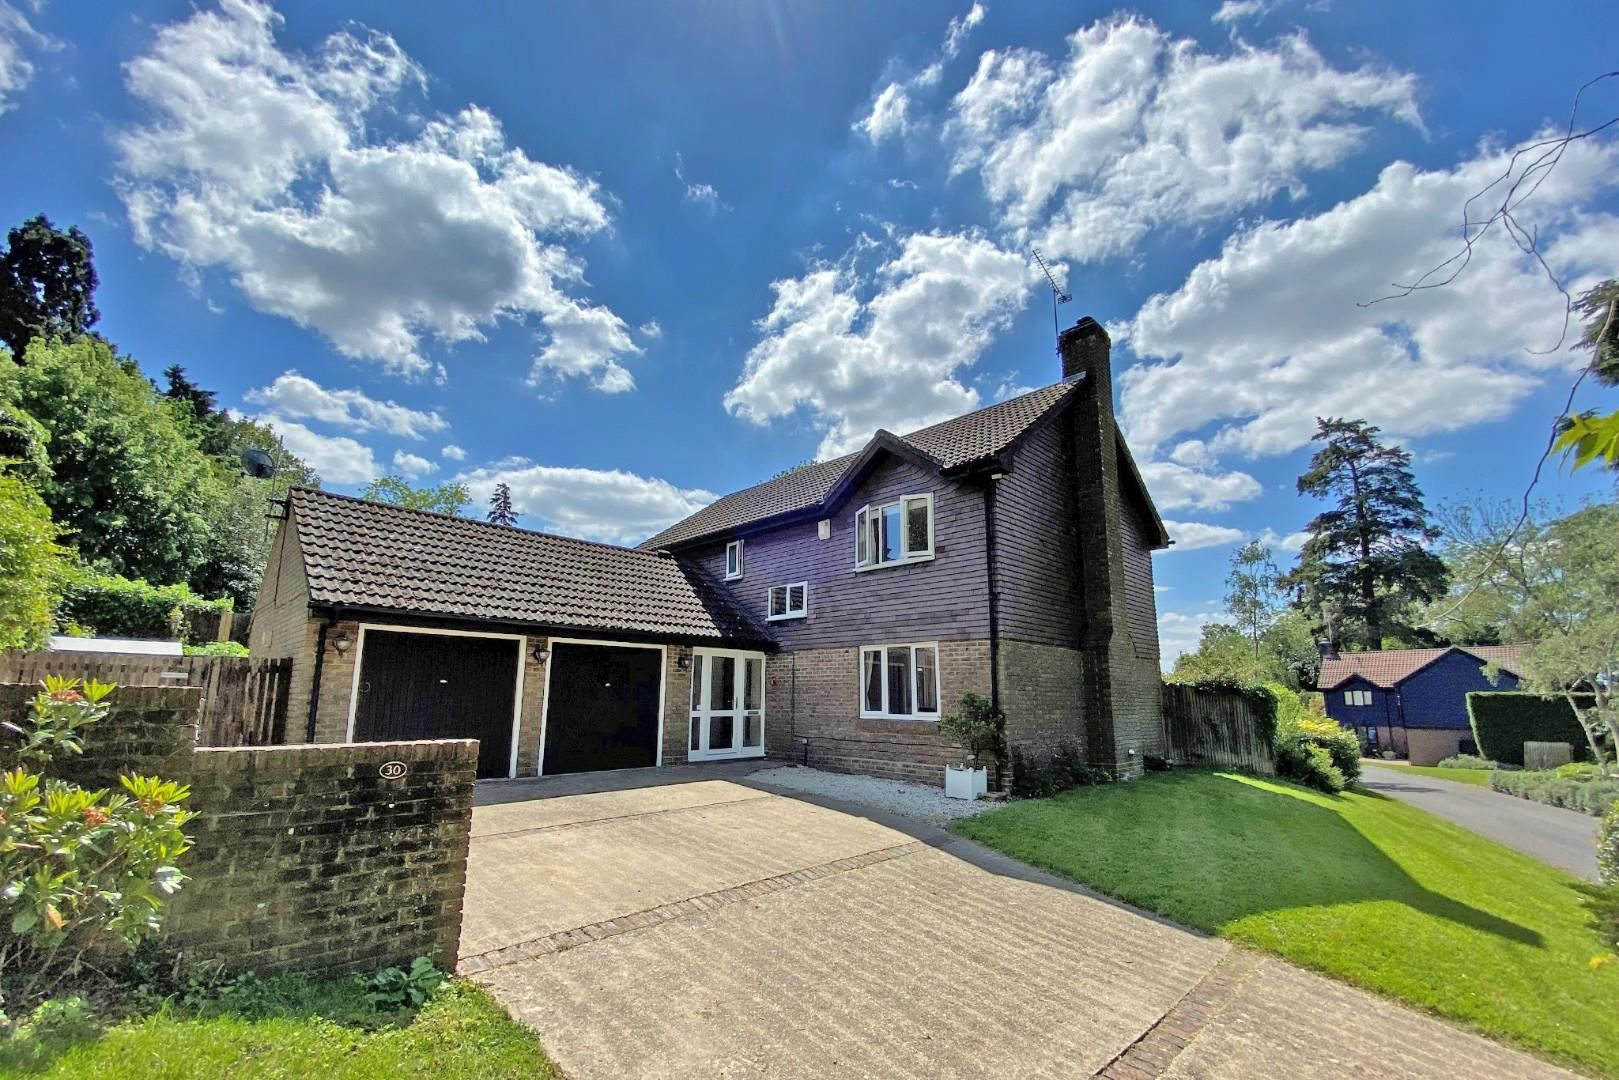 4 bed detached to rent - Property Image 1